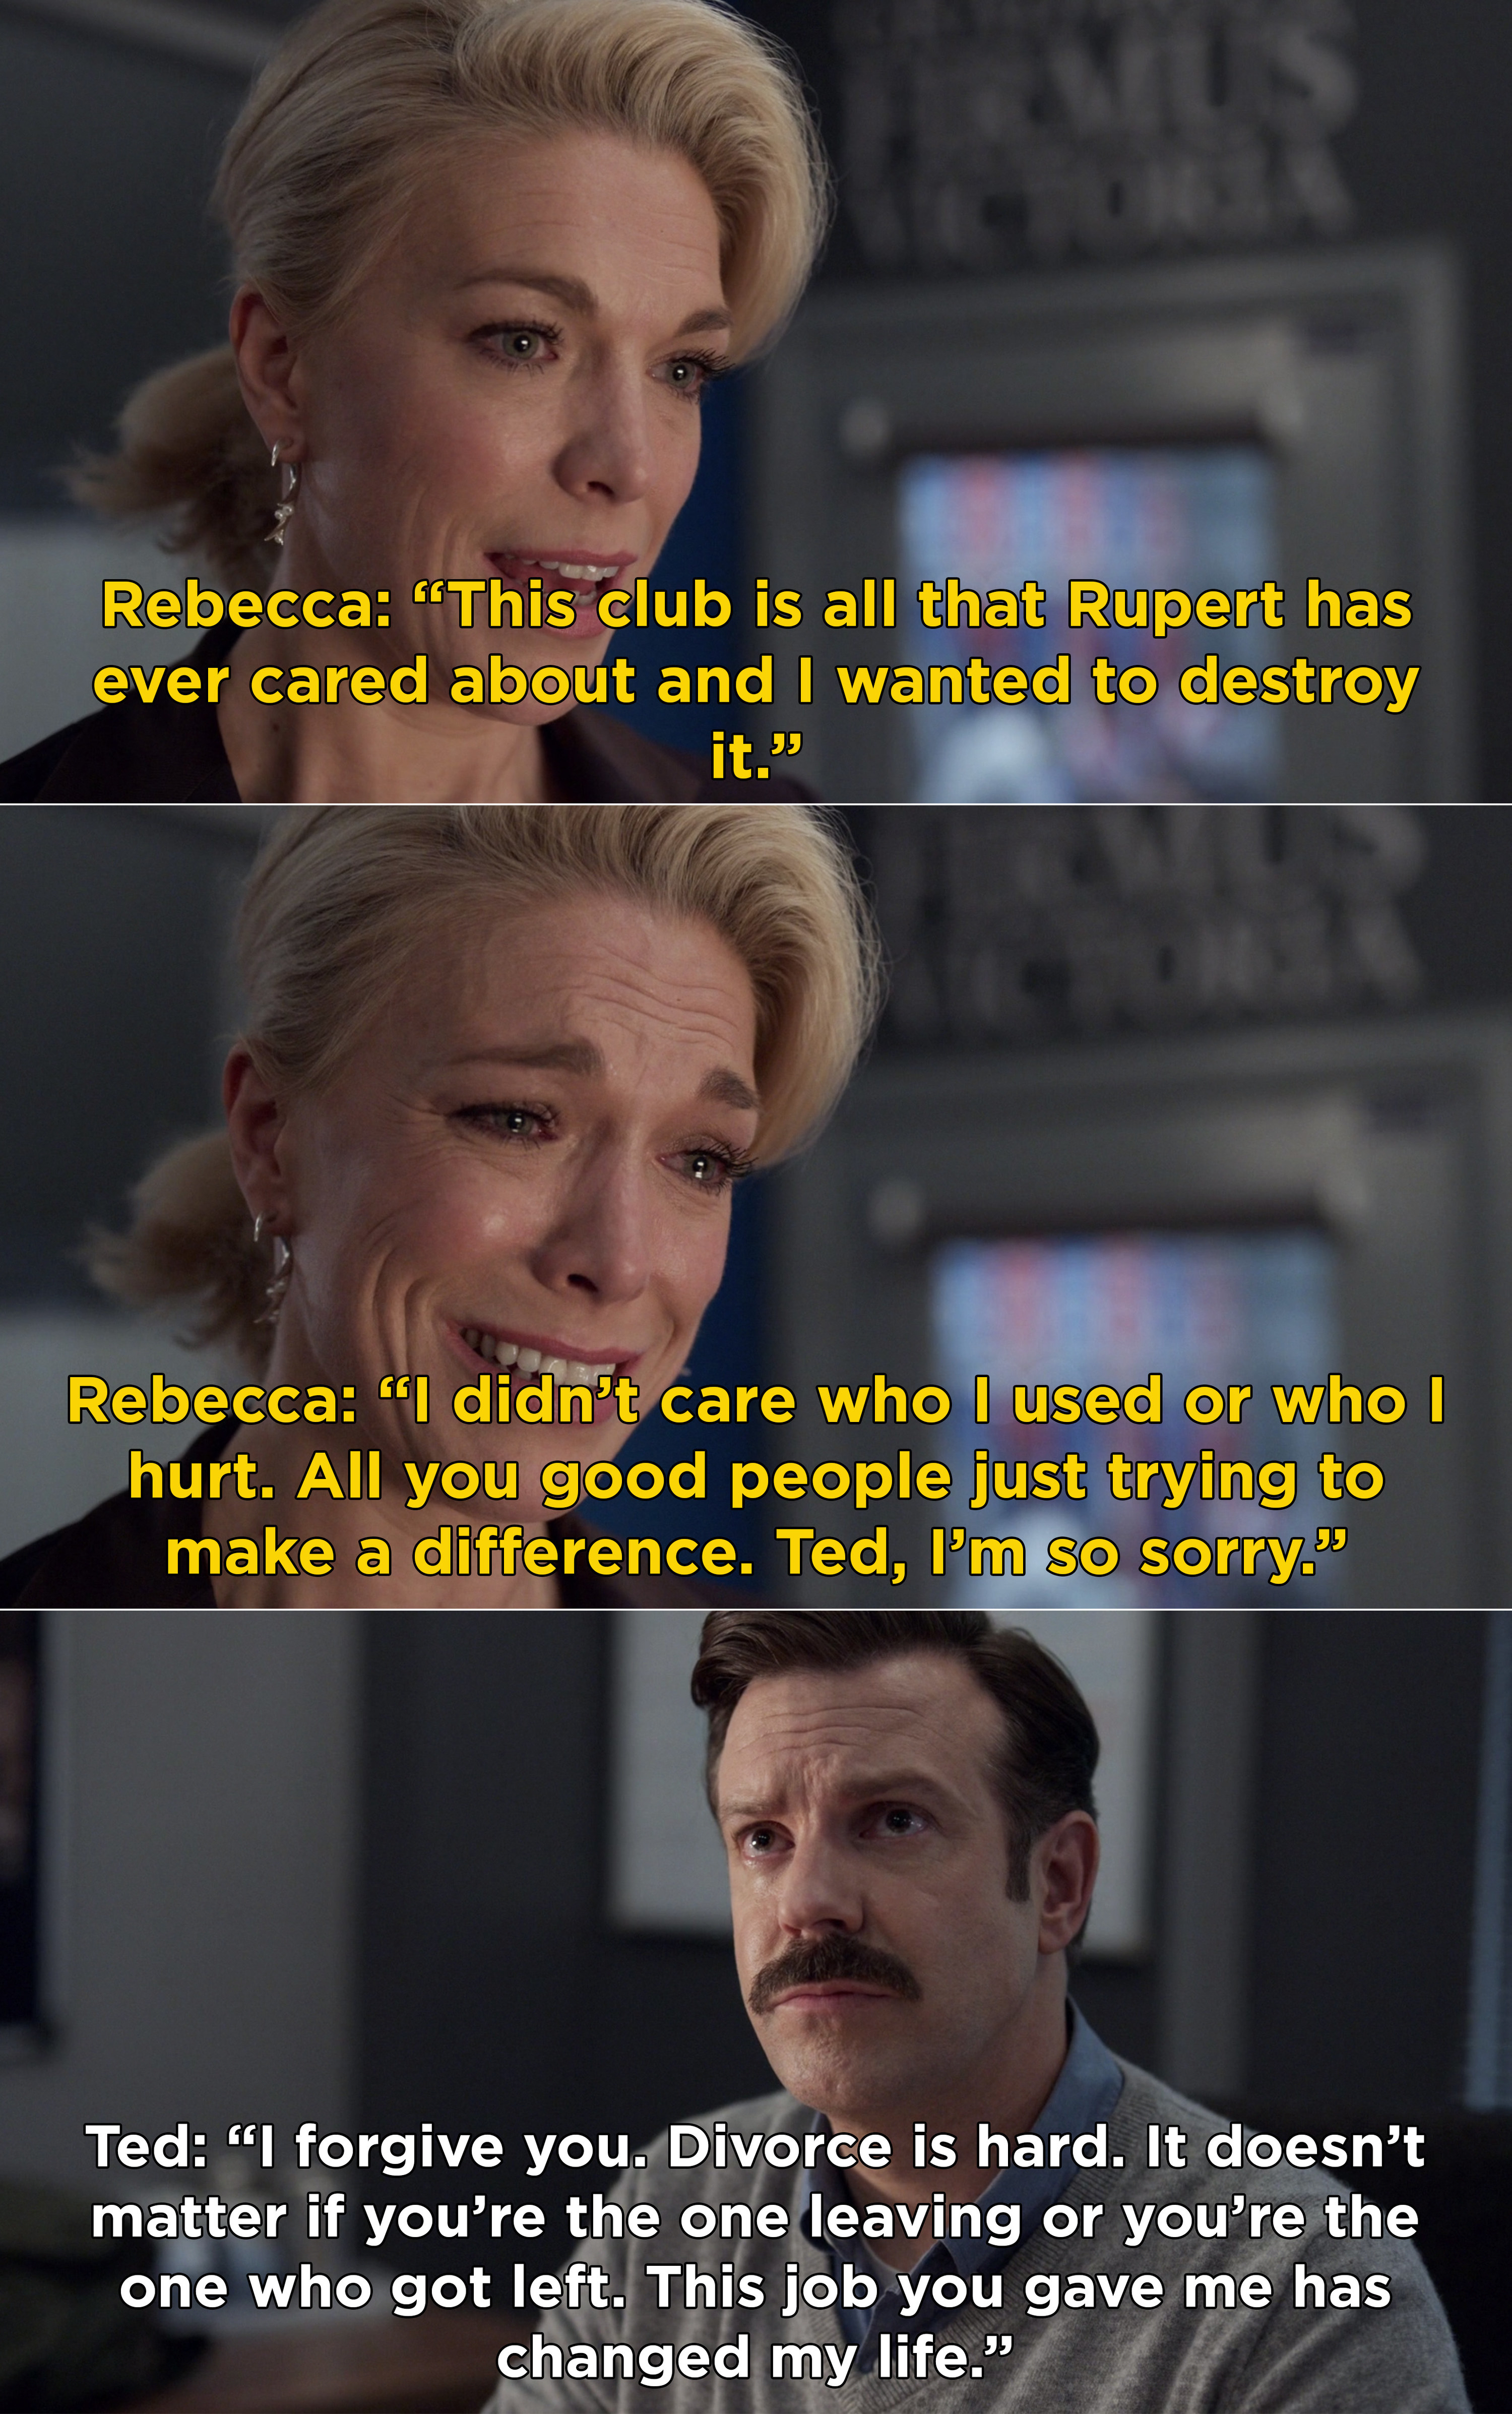 Rebecca saying she's sorry and Ted forgiving her because this job changed his life